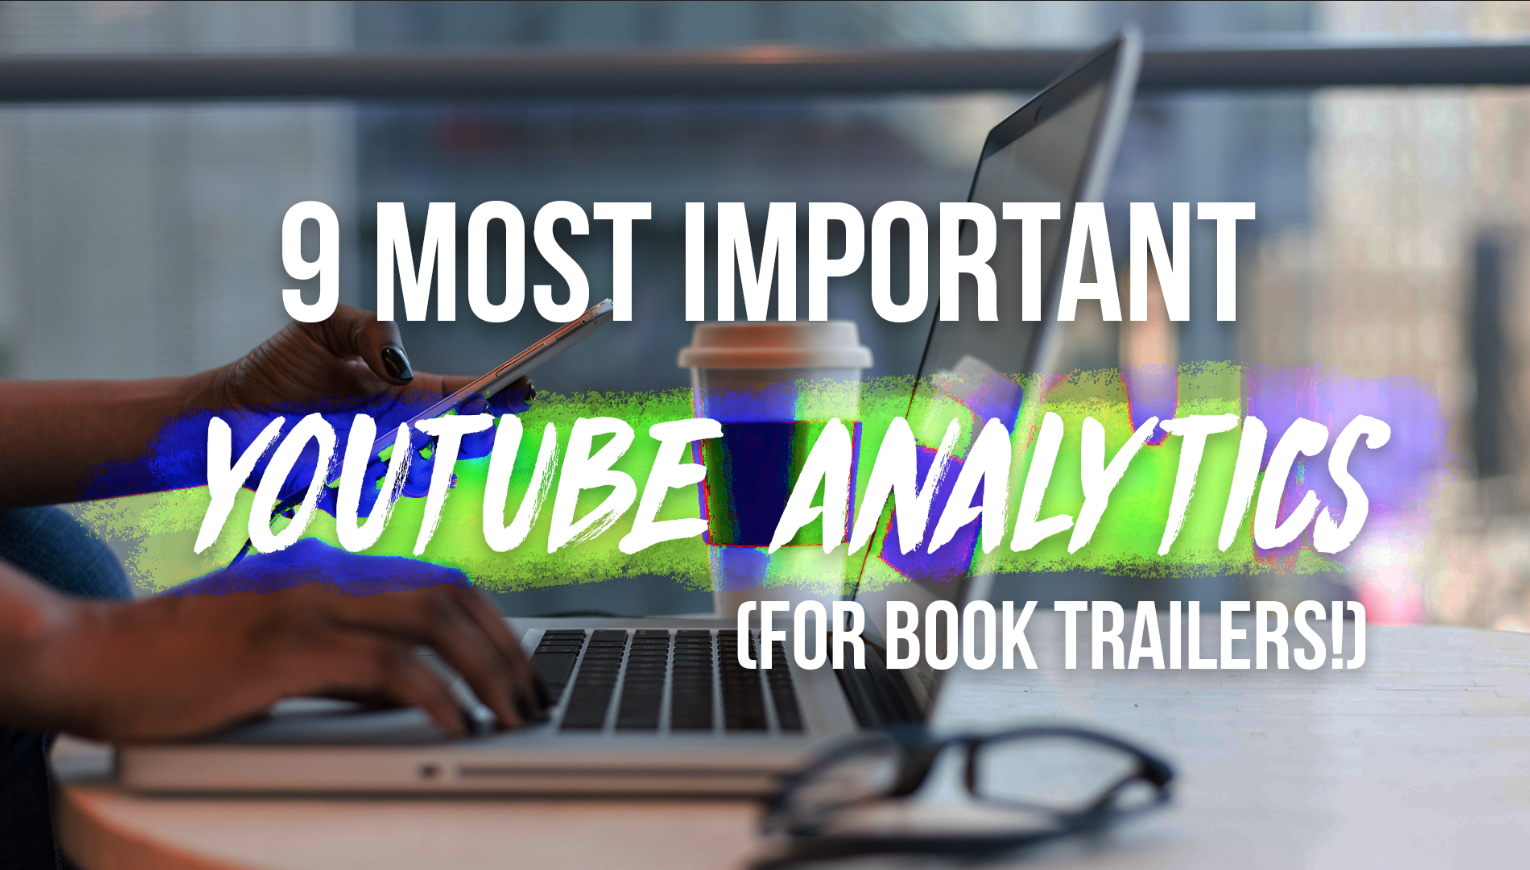 book trailers analytics